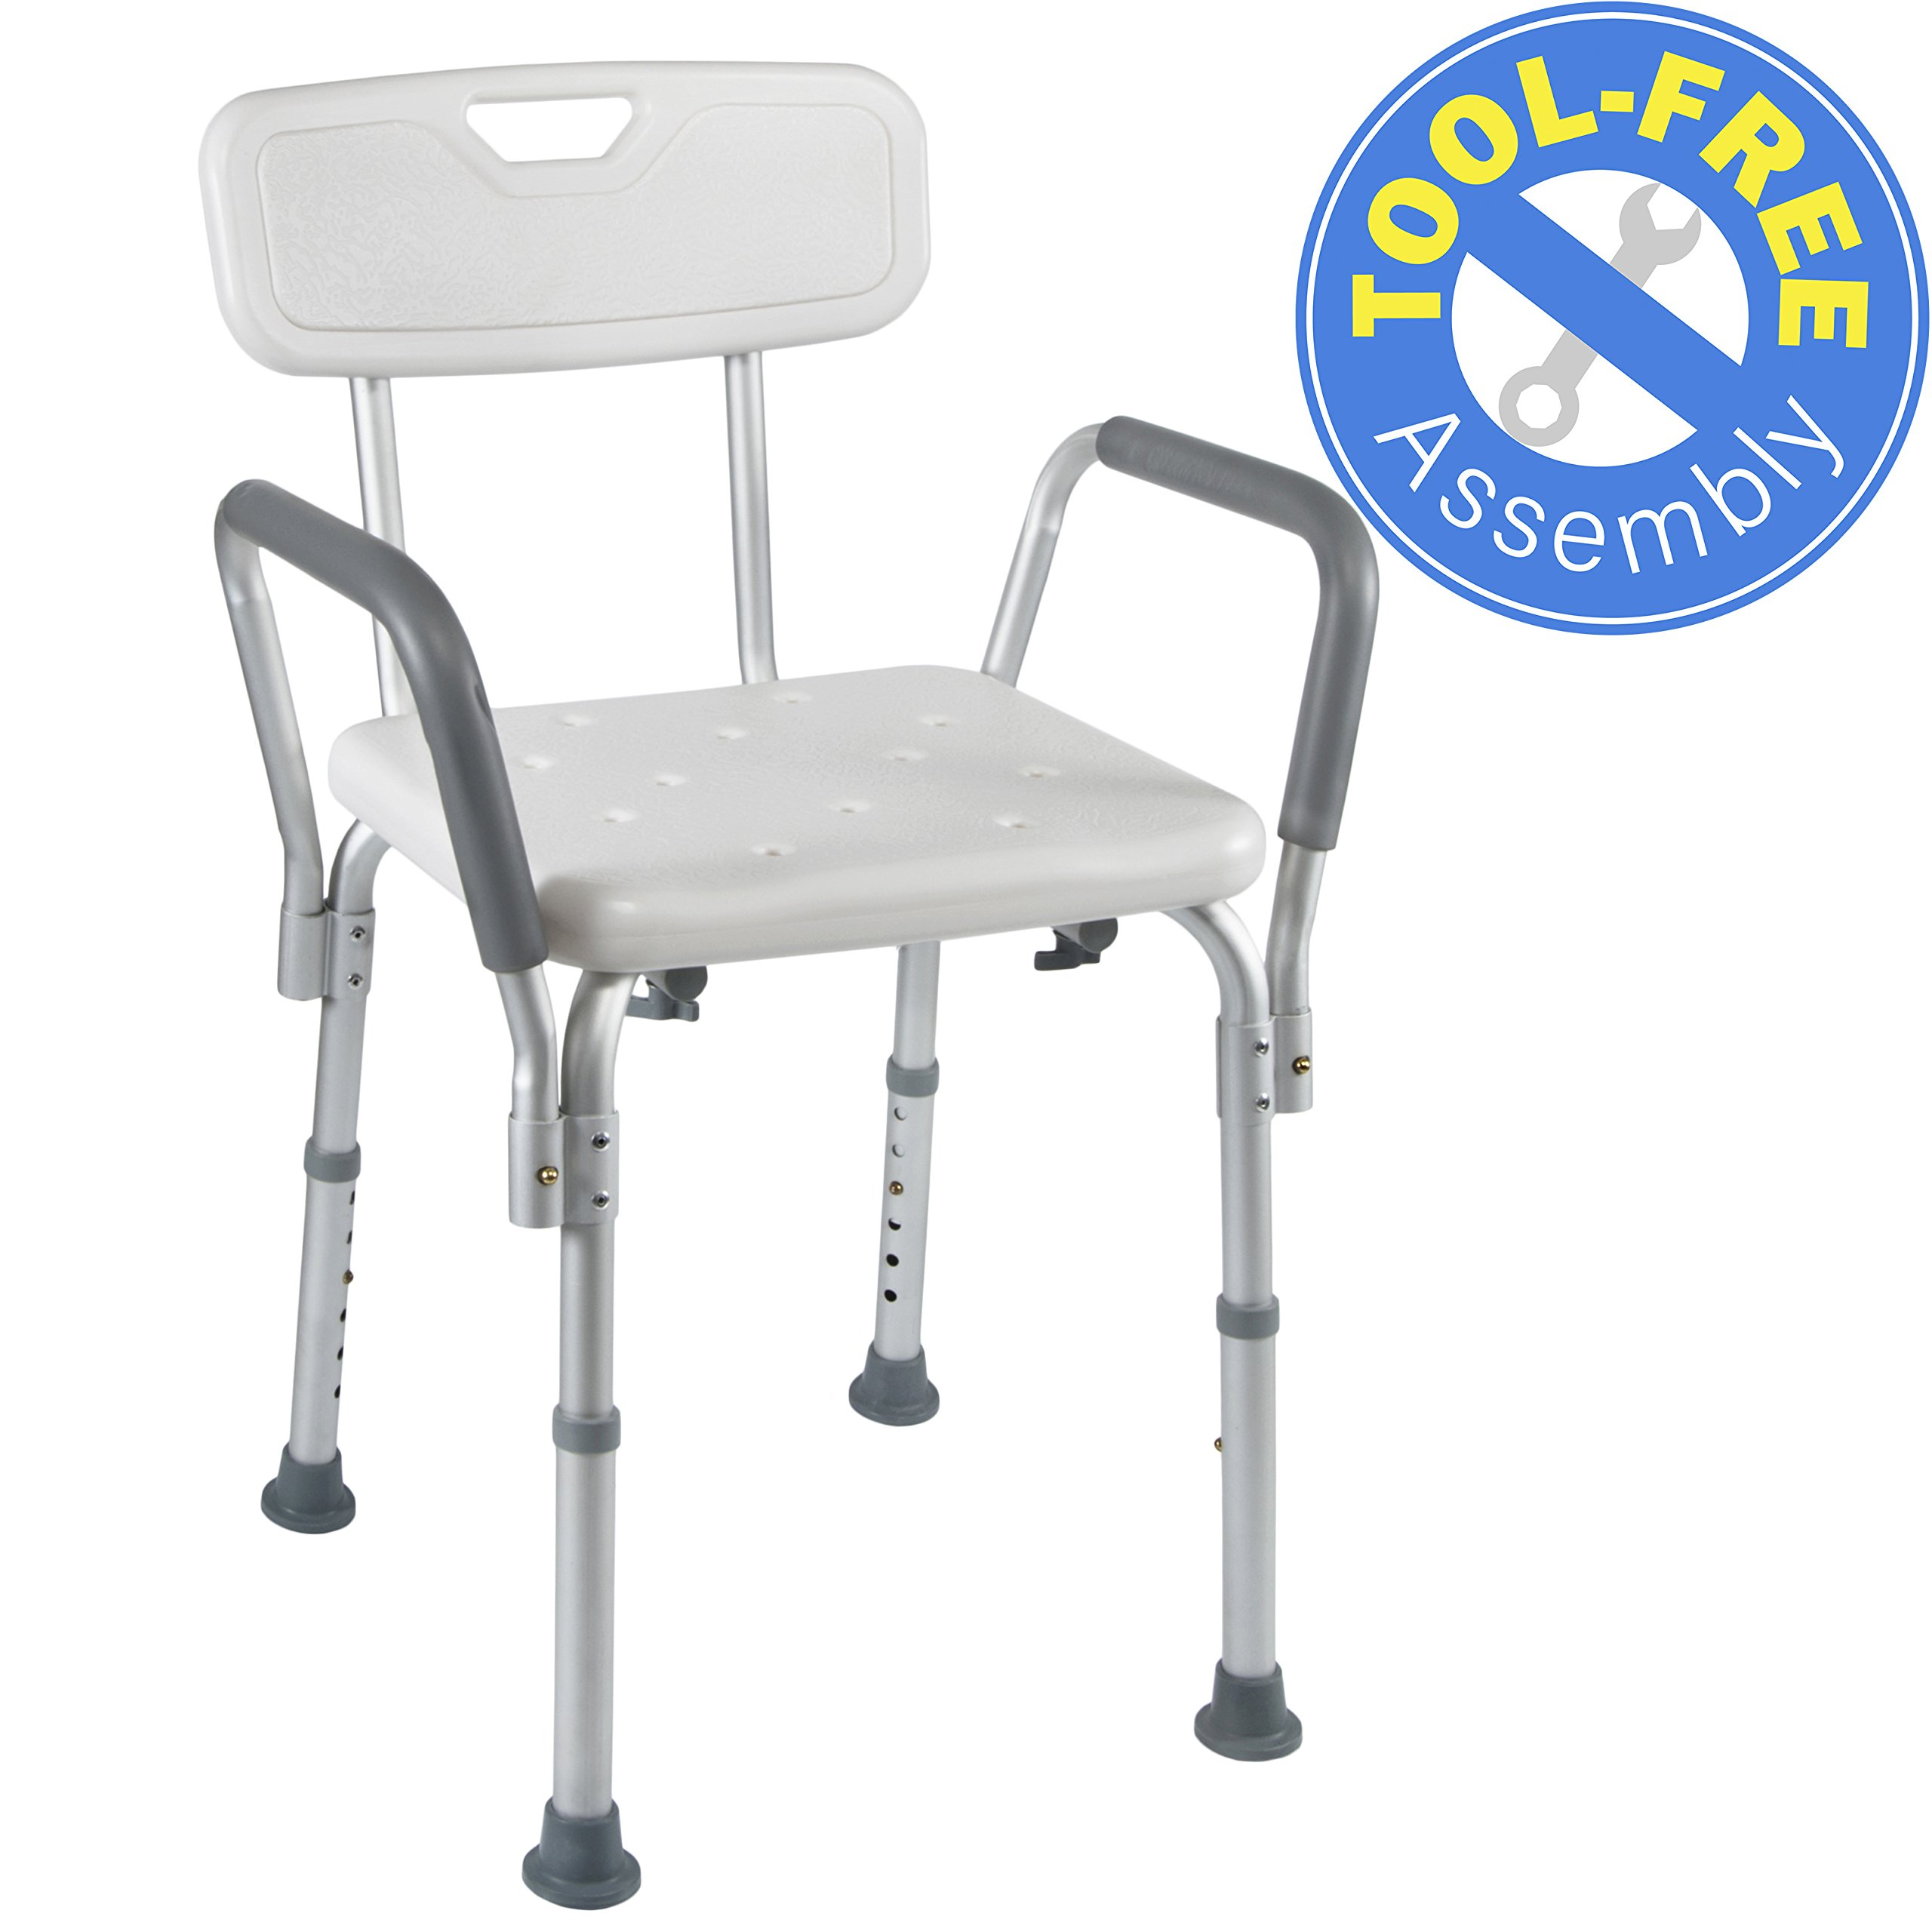 Medical Tool-Free Assembly Spa Bathtub Shower Lift Chair, Portable Bath Seat, Adjustable Shower Bench, White Bathtub Lift Chair with Arms